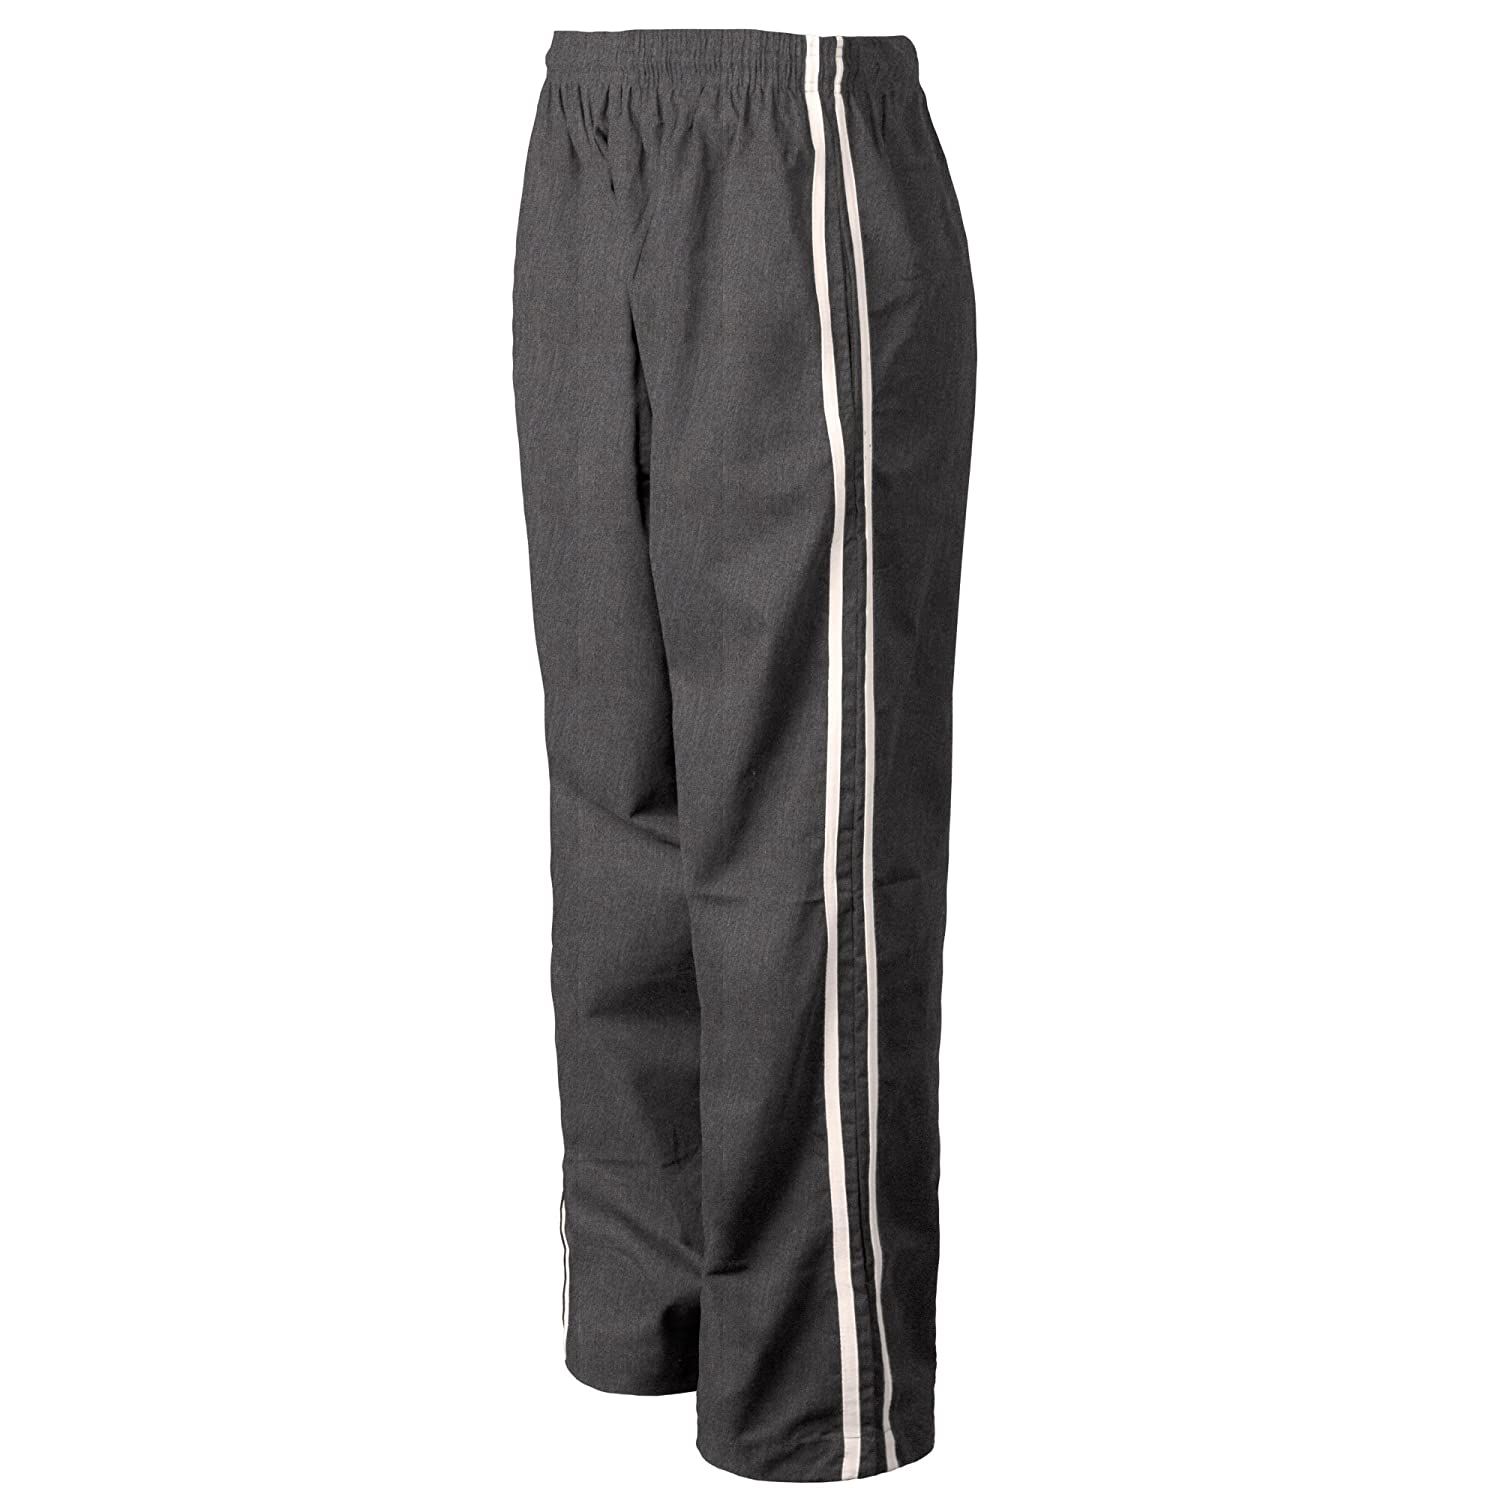 Chef Code Chef Pants, Classic Baggy with Elastic Waist and Drawstring CC254